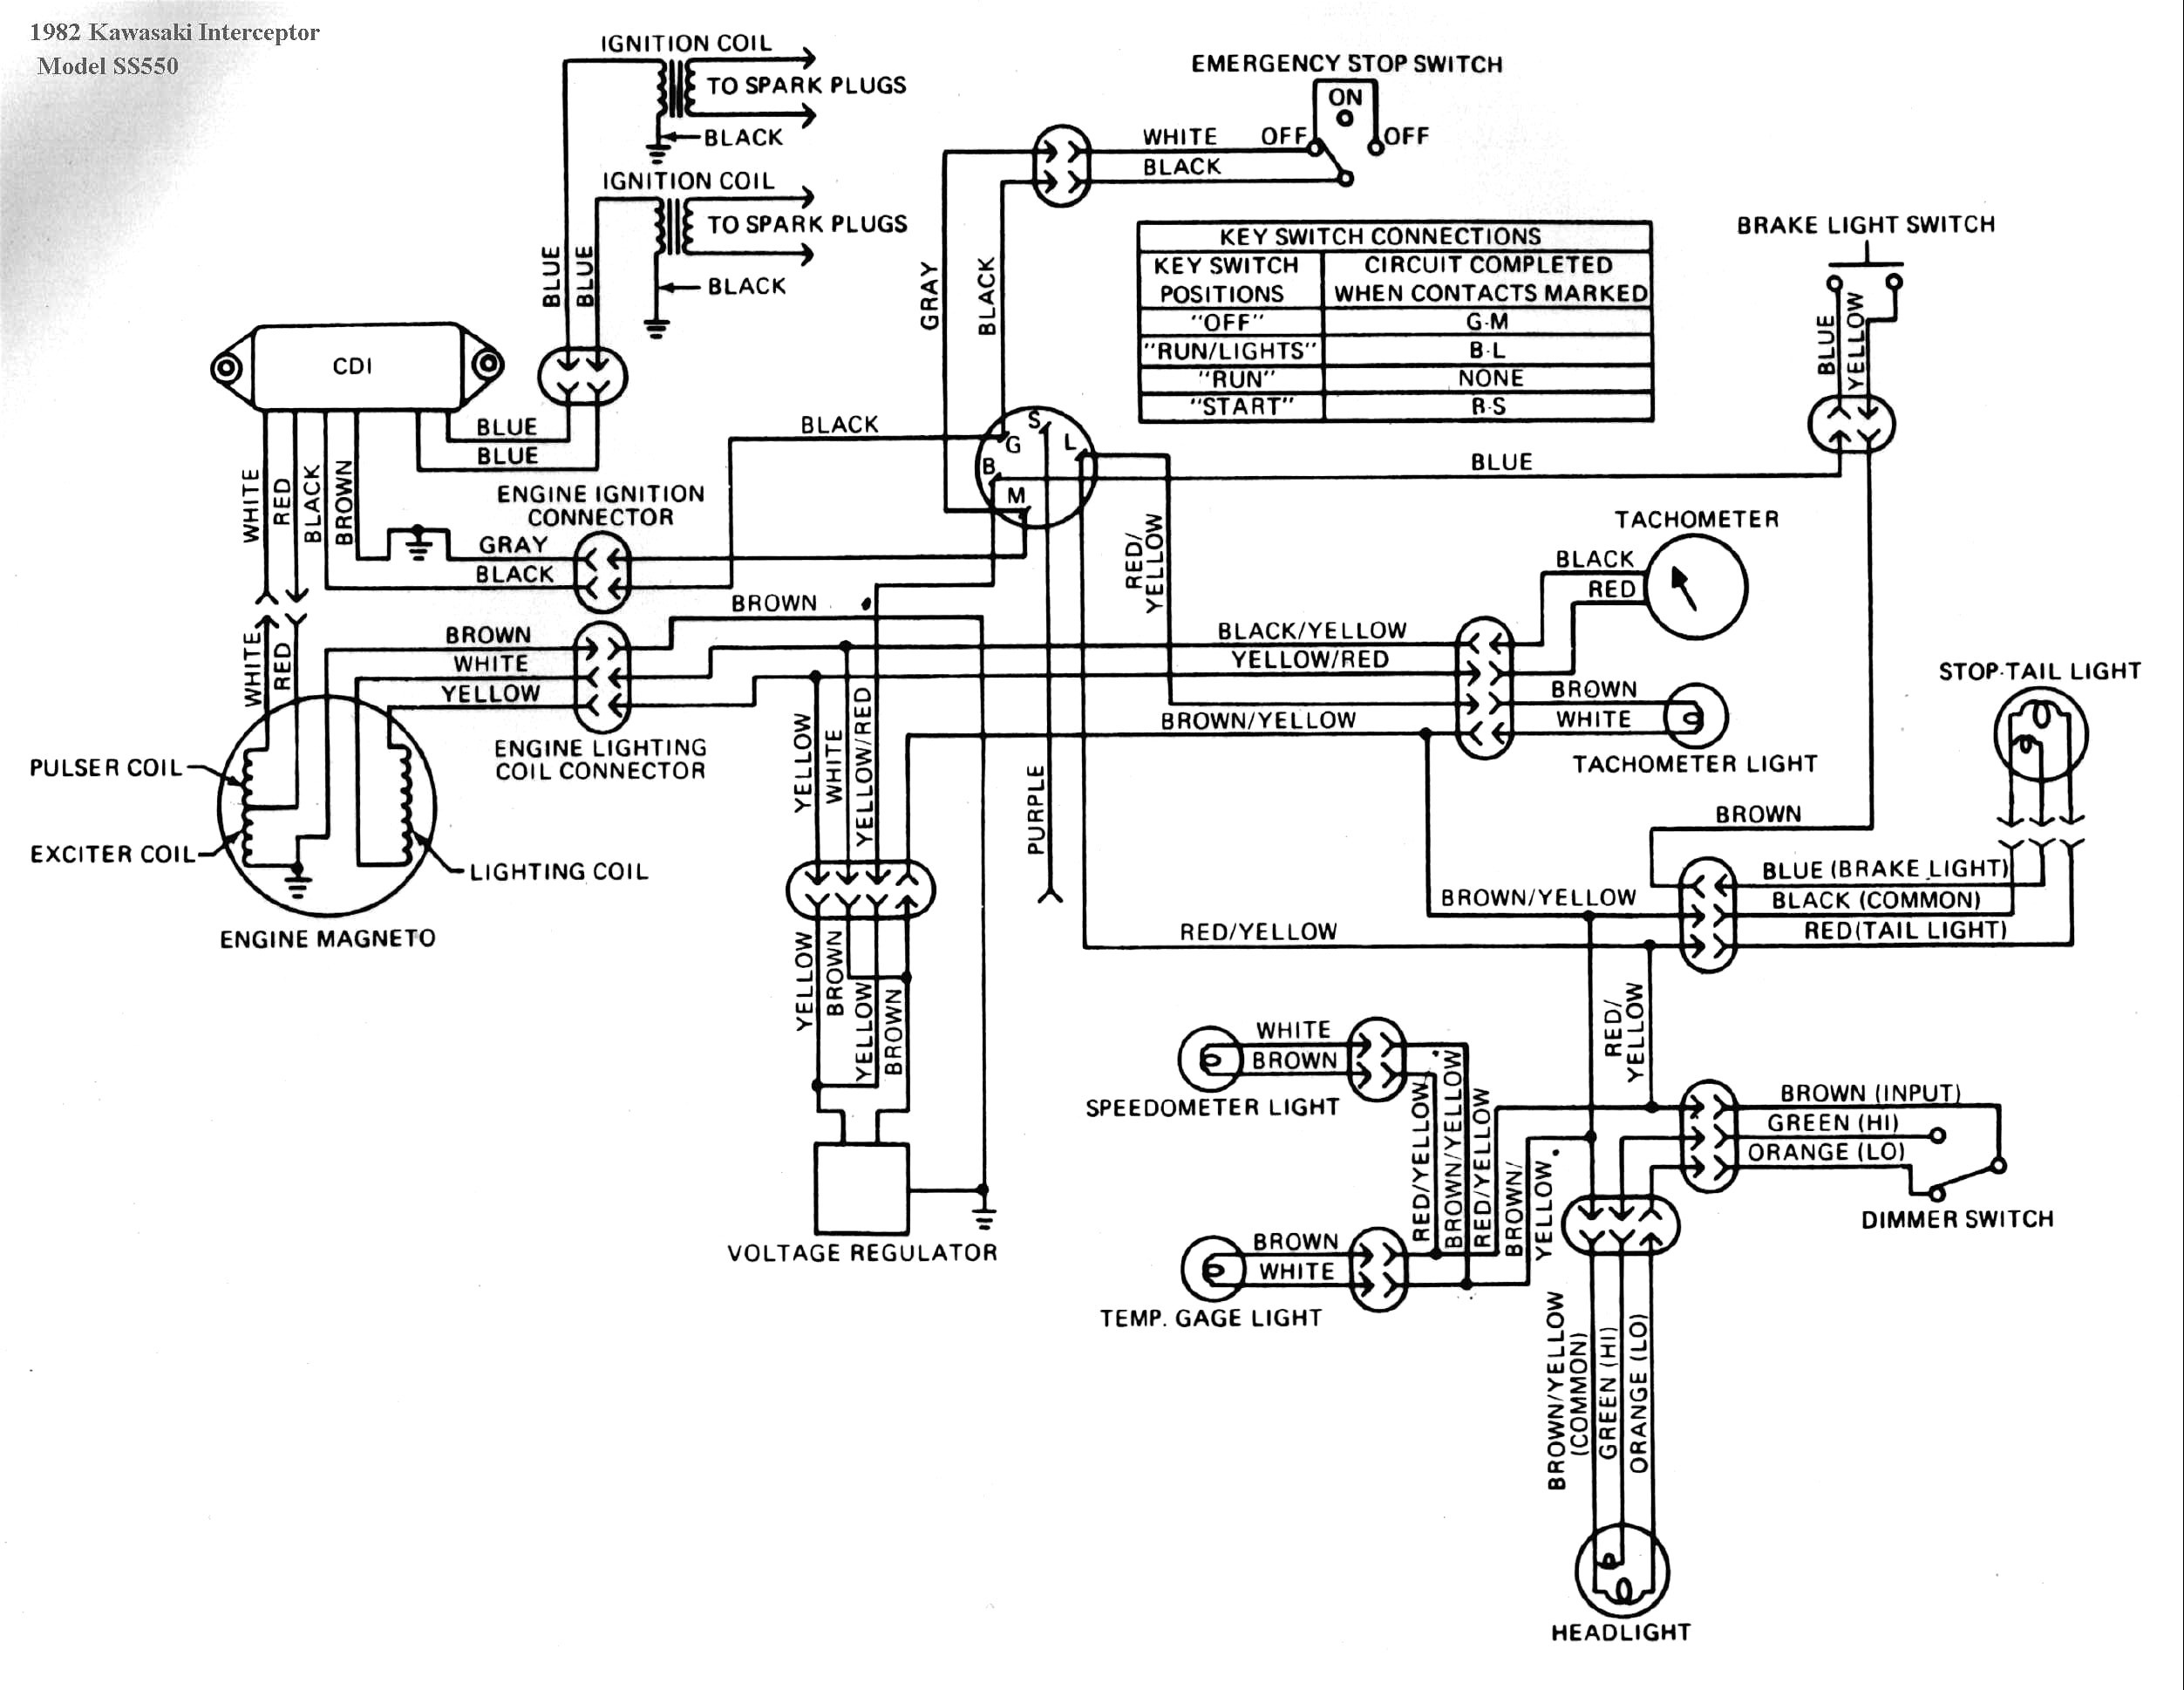 2007 Kawasaki Klr 650 Wiring Diagram - Wiring Diagram